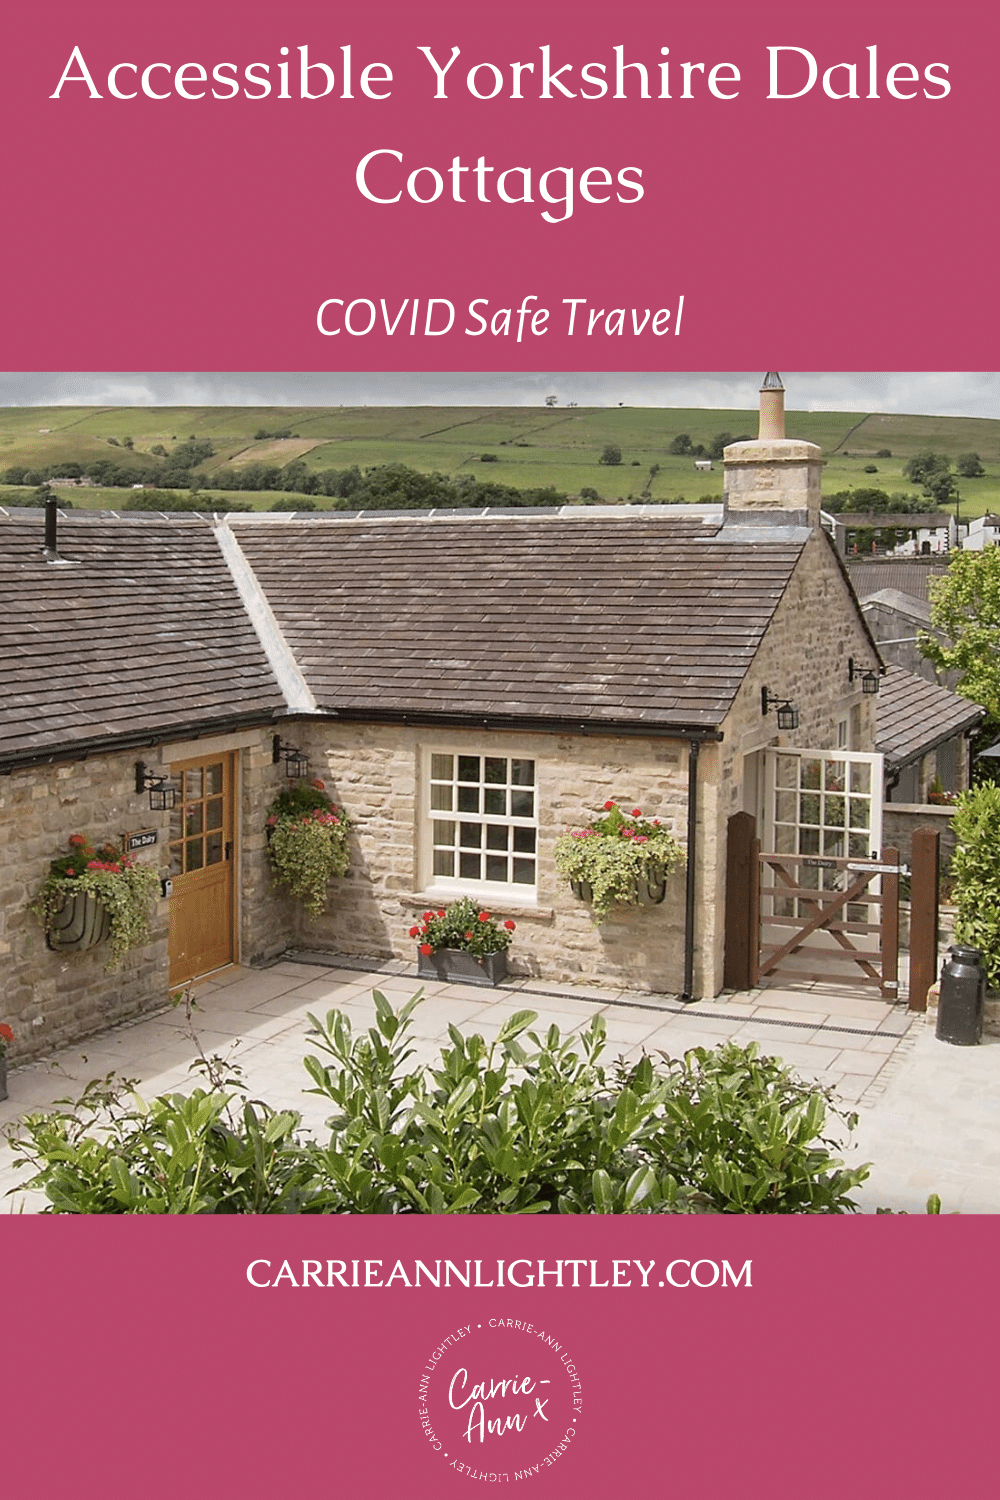 Top of image reads - Accessible Yorkshire Dales Cottages COVID Safe Travel. Middle of image shows external view of the Dairy cottage. Bottom of image has this blog's website address and logo